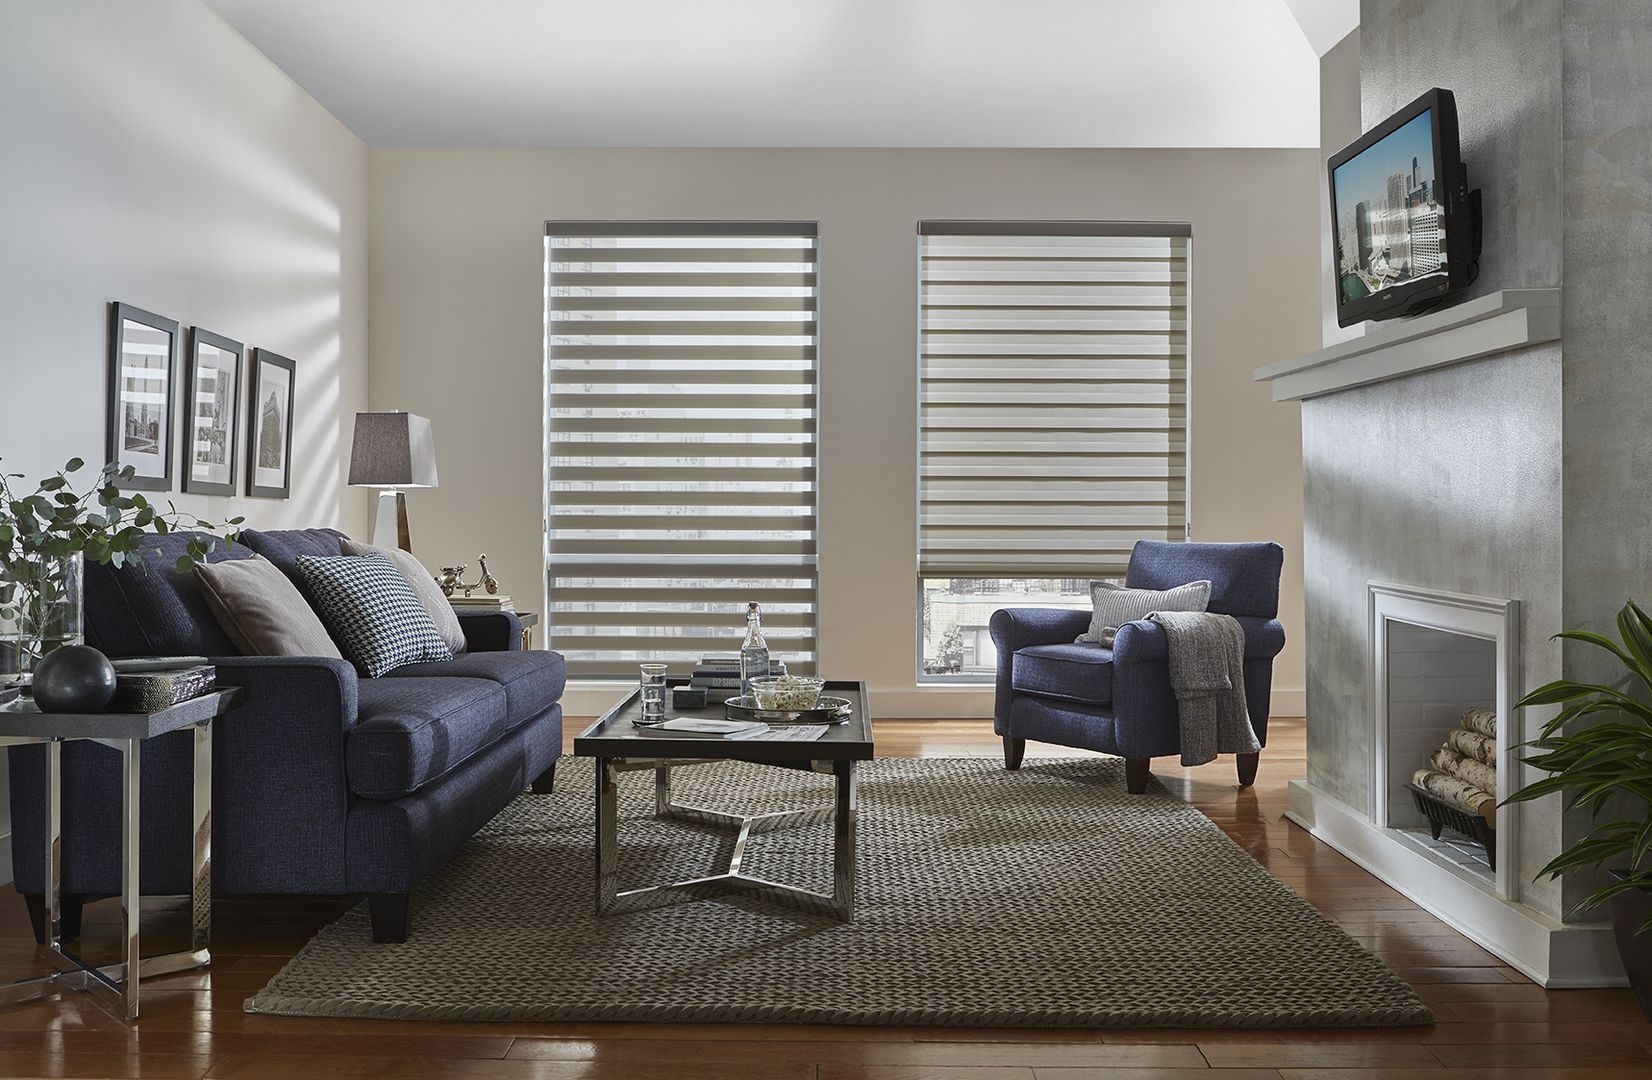 blinds horizontal mn s alta top window image products fashions twf slider wood today andover